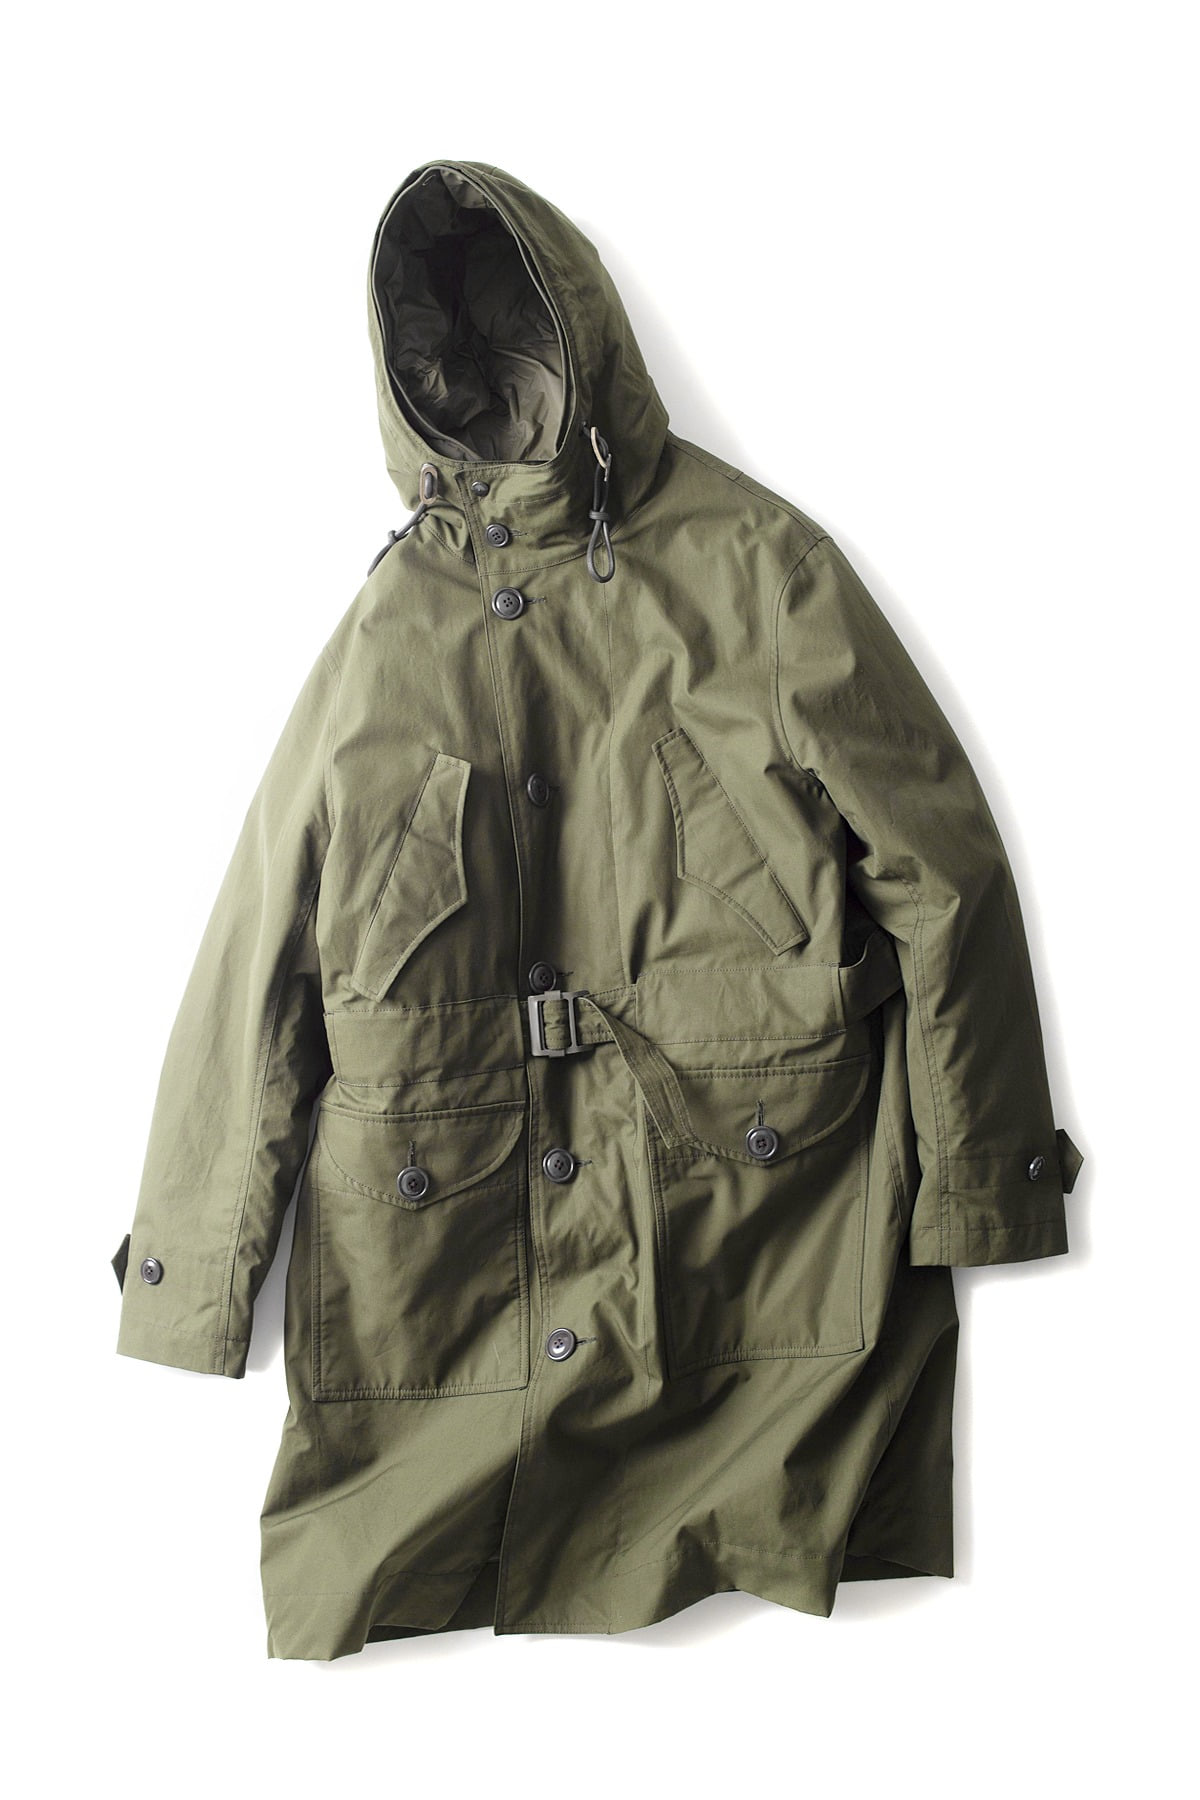 EASTLOGUE : Changjin Battle Parka (Olive)